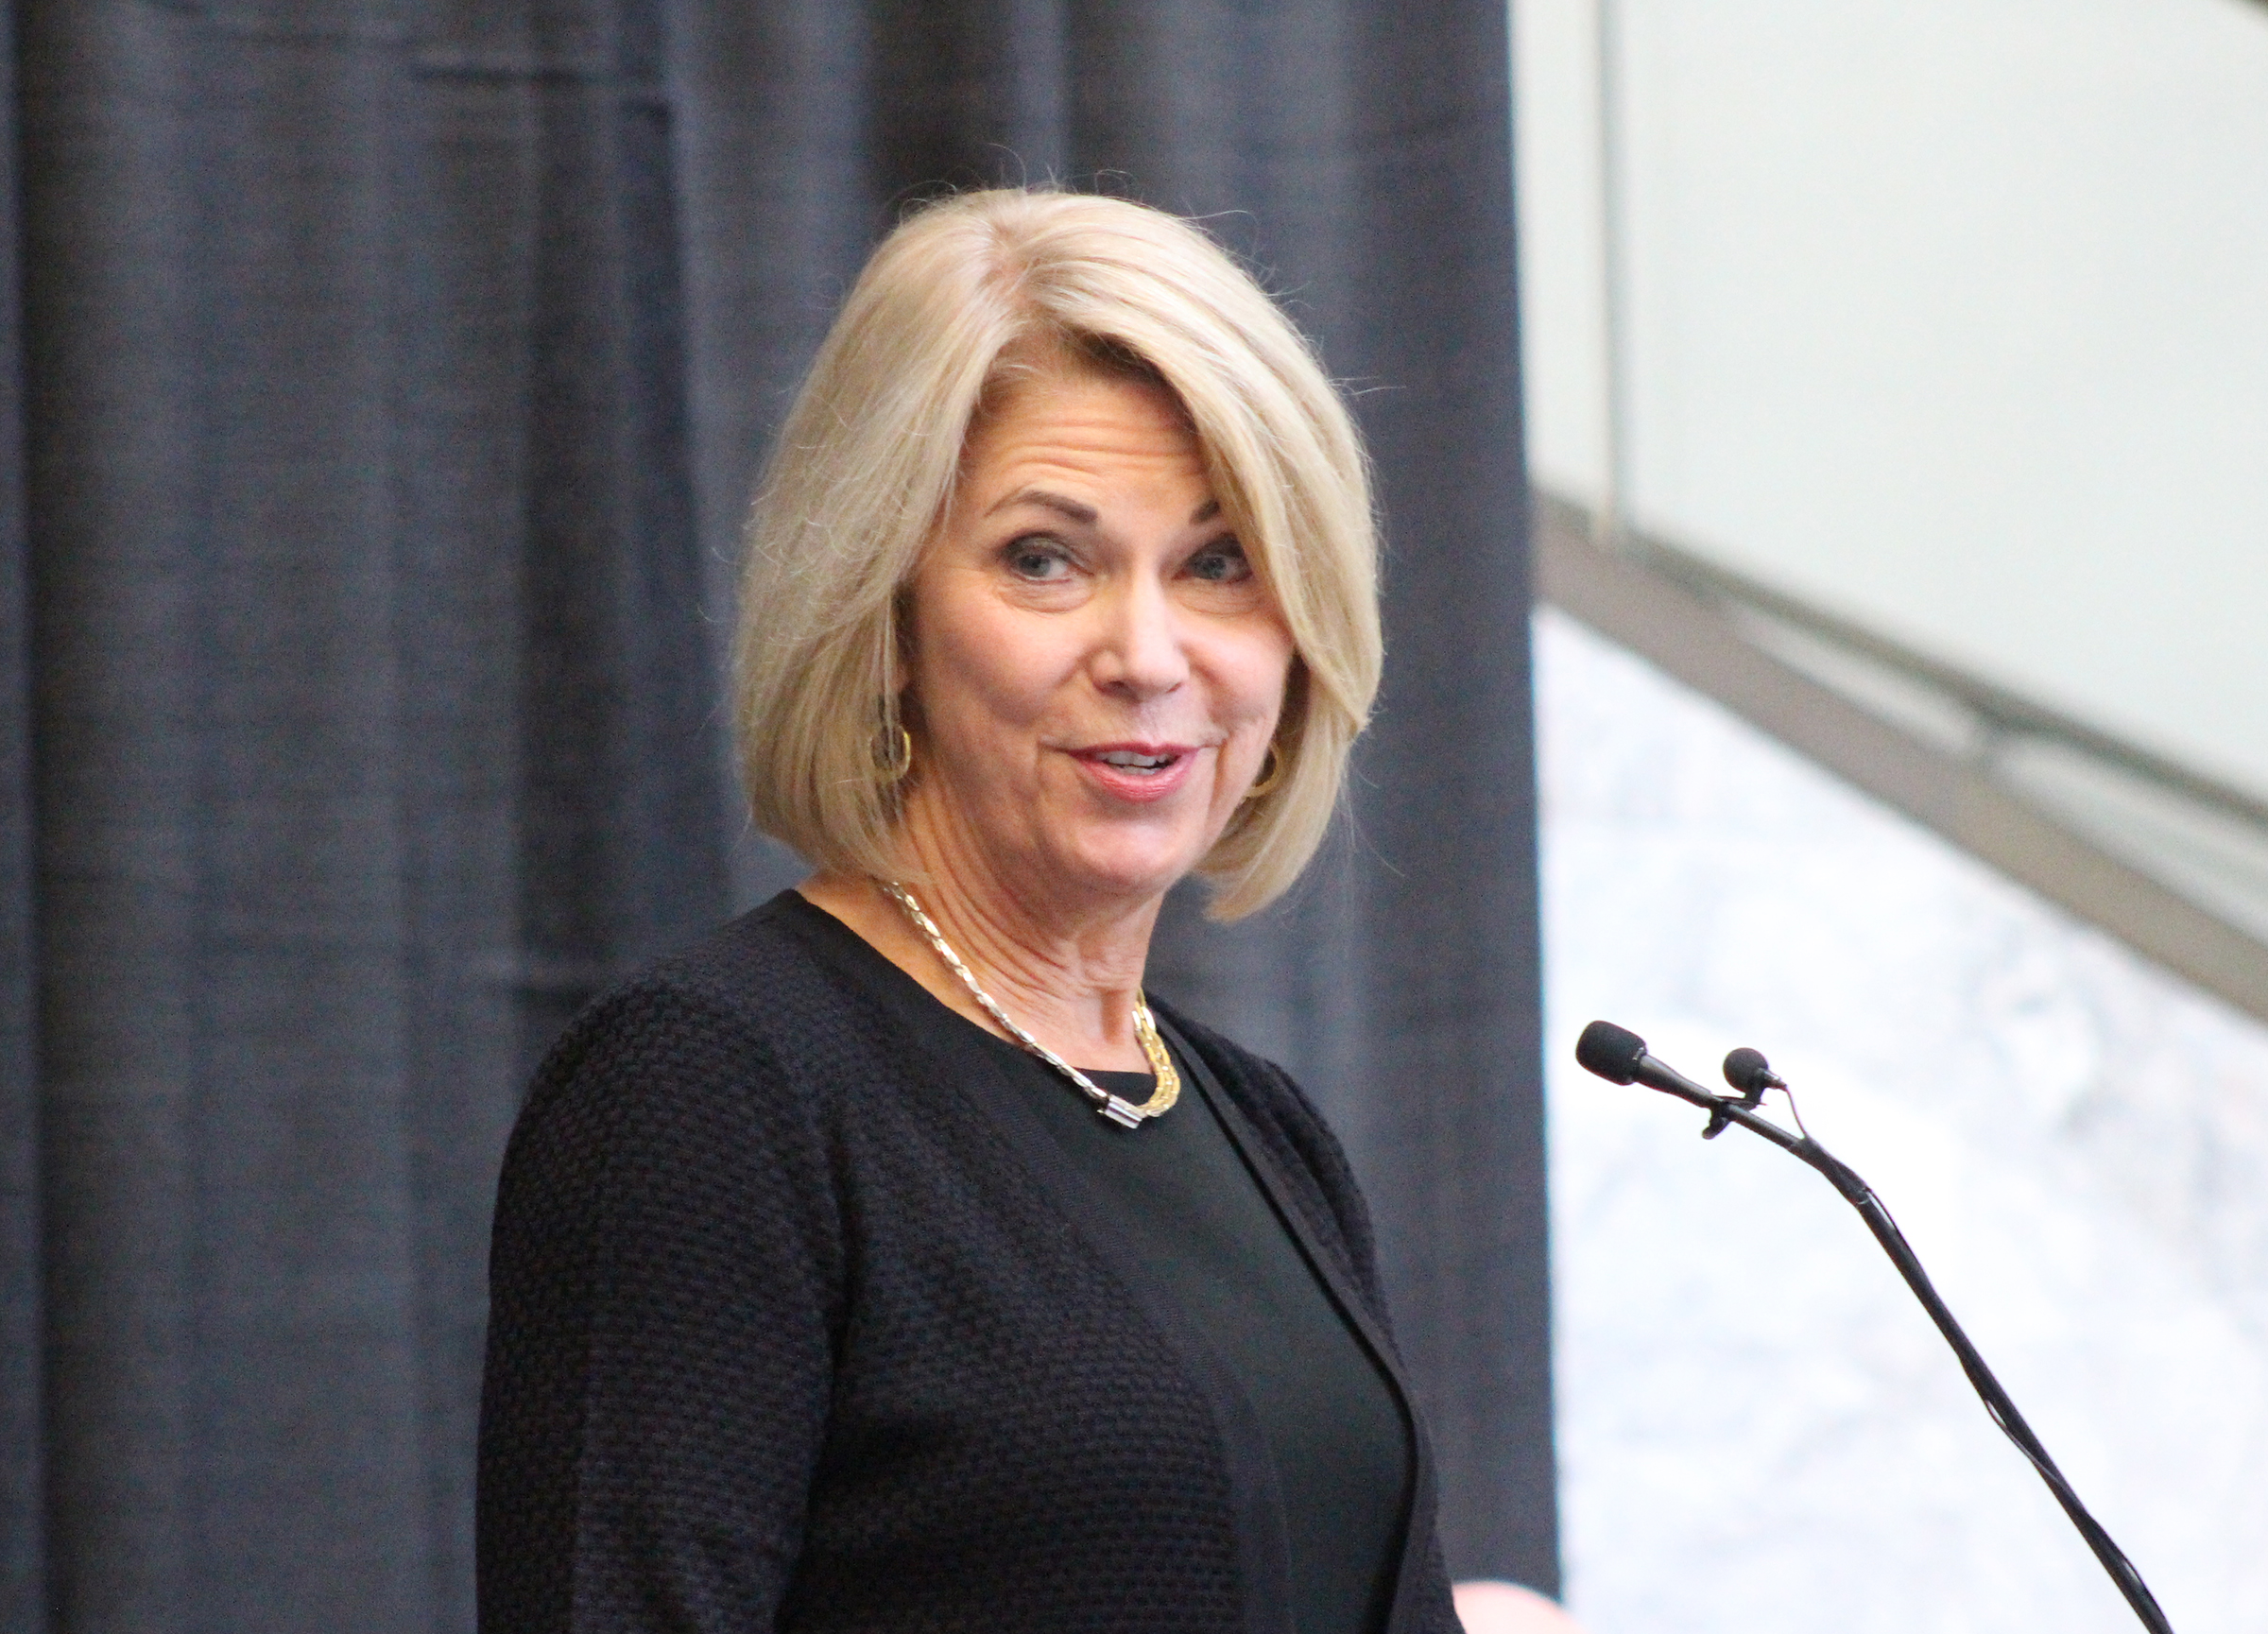 Omaha Mayor Jean Stothert delivers remarks during Brian C. Buescher's investiture ceremony at the Hruska Federal Courthouse on Friday, Nov. 15, 2019. (Photo by Scott Stewart)